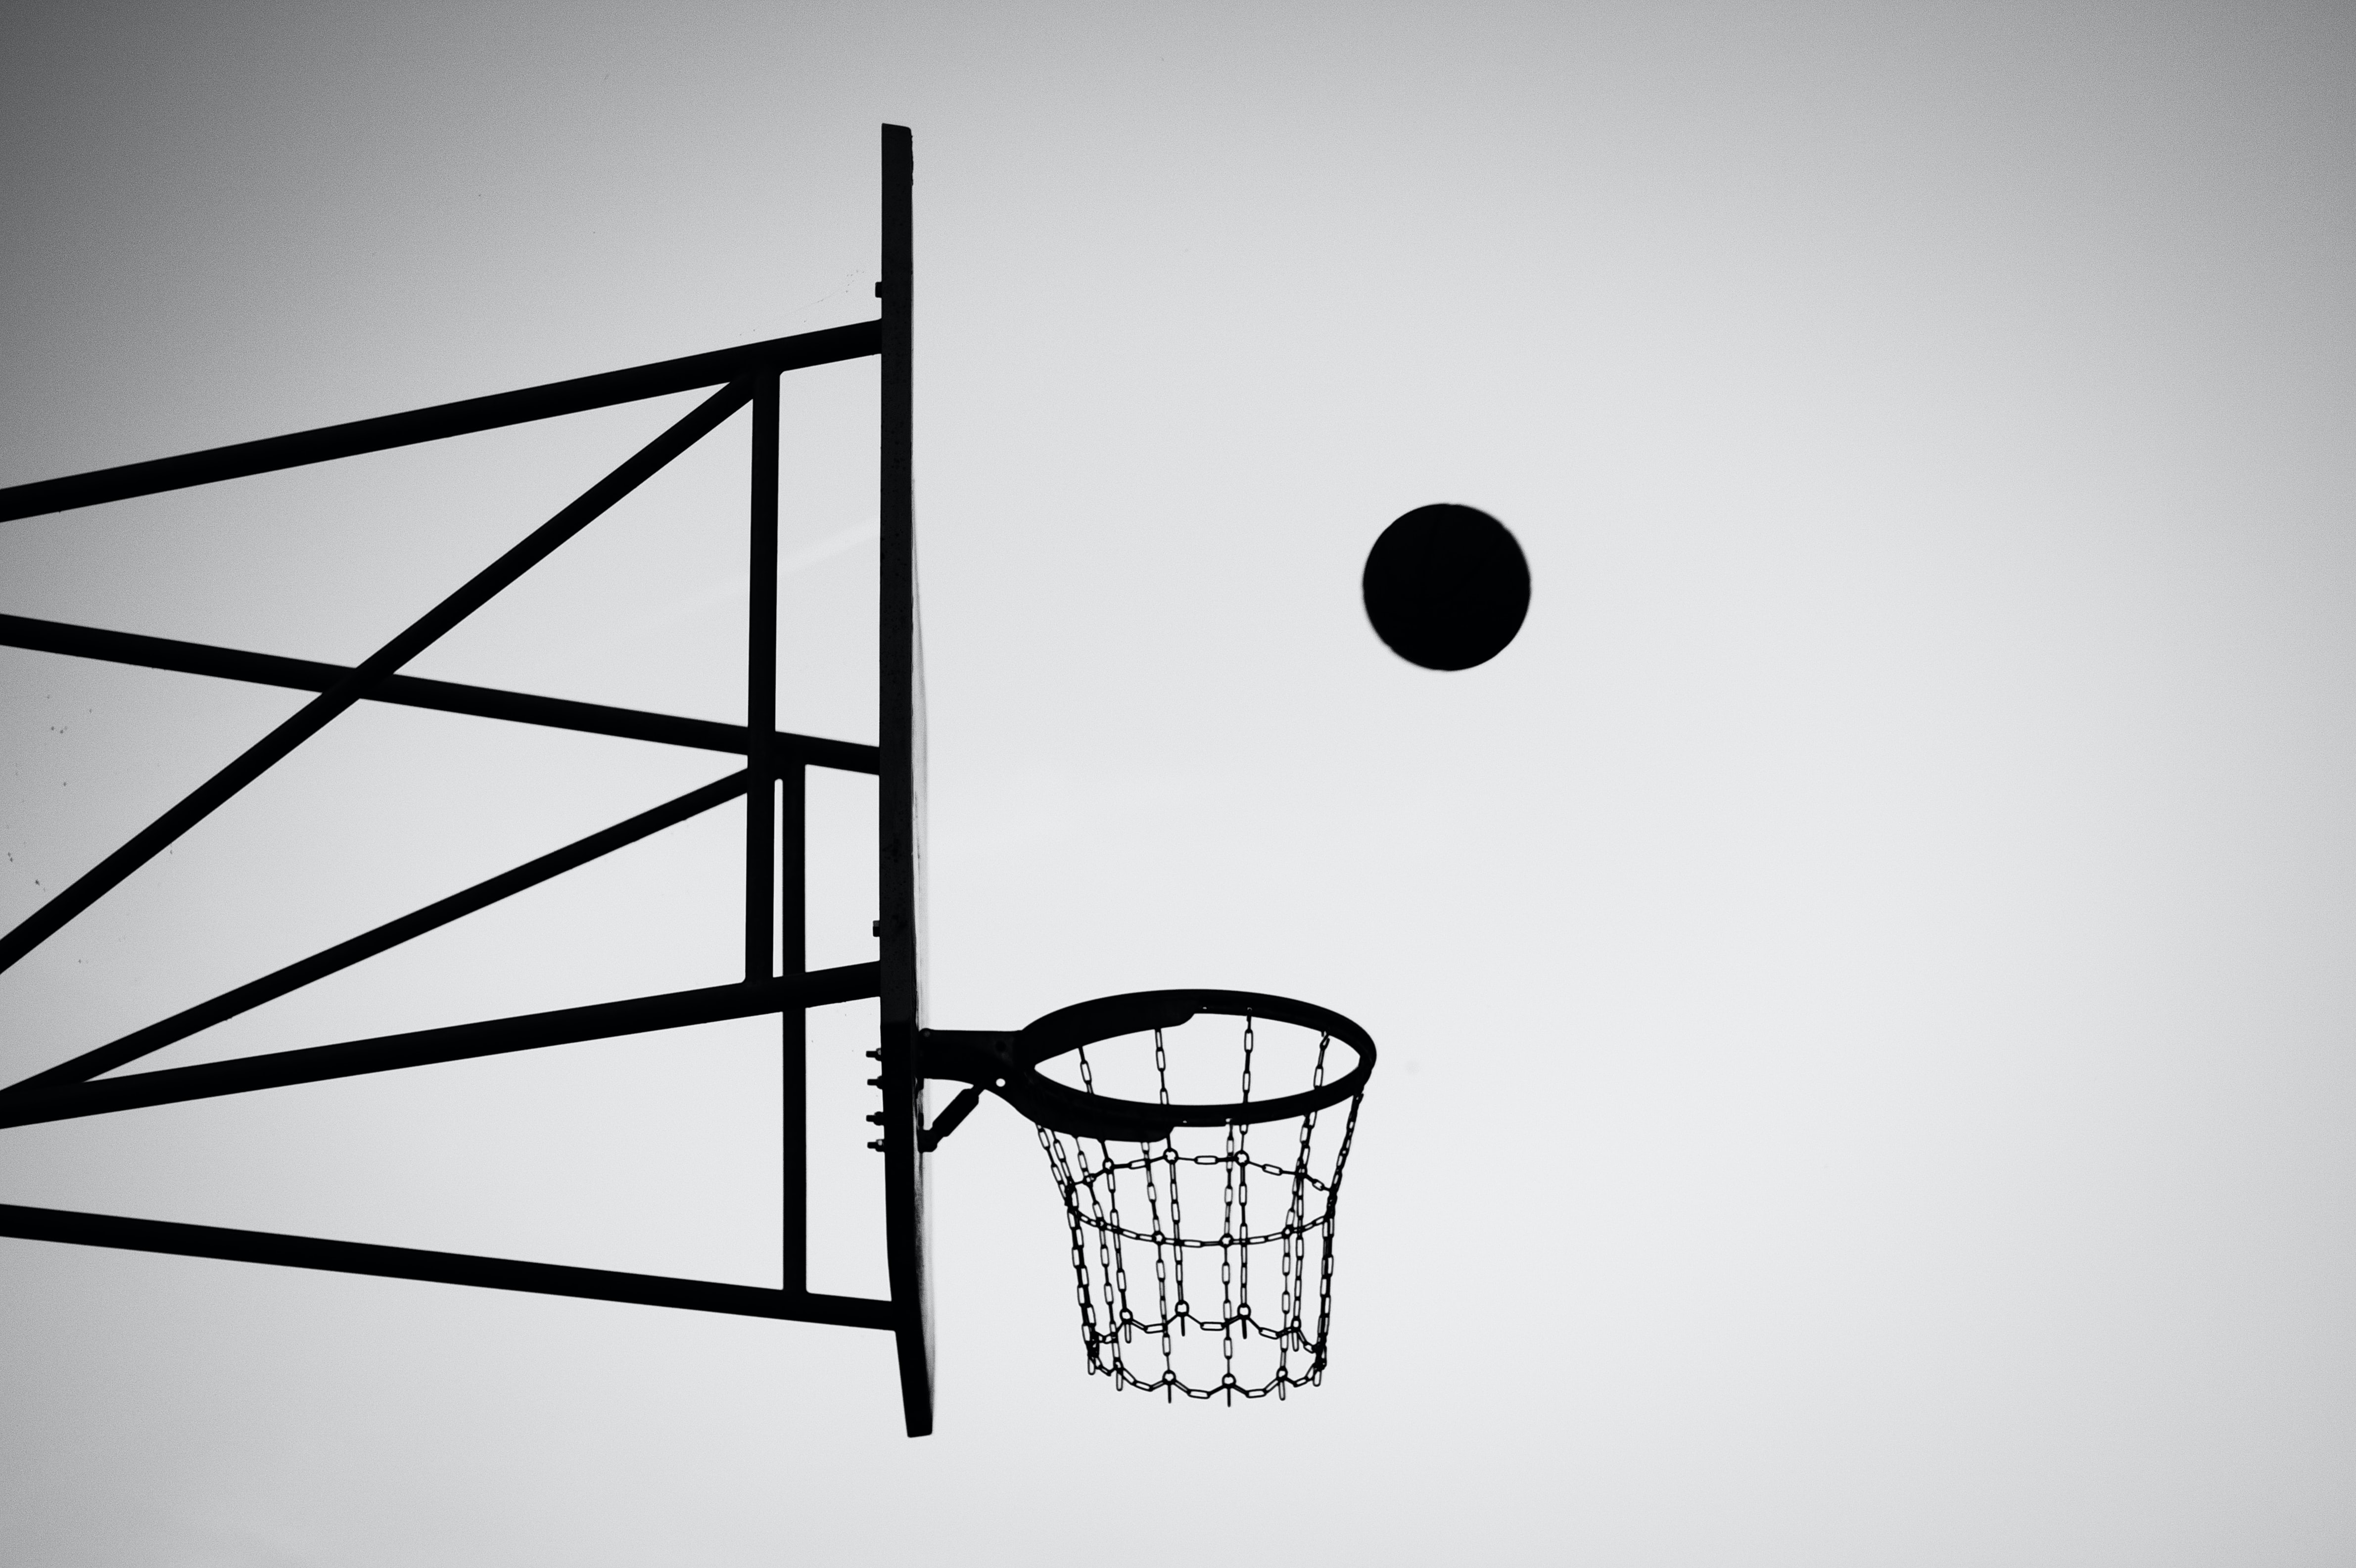 grayscale photo of ball about to shoot